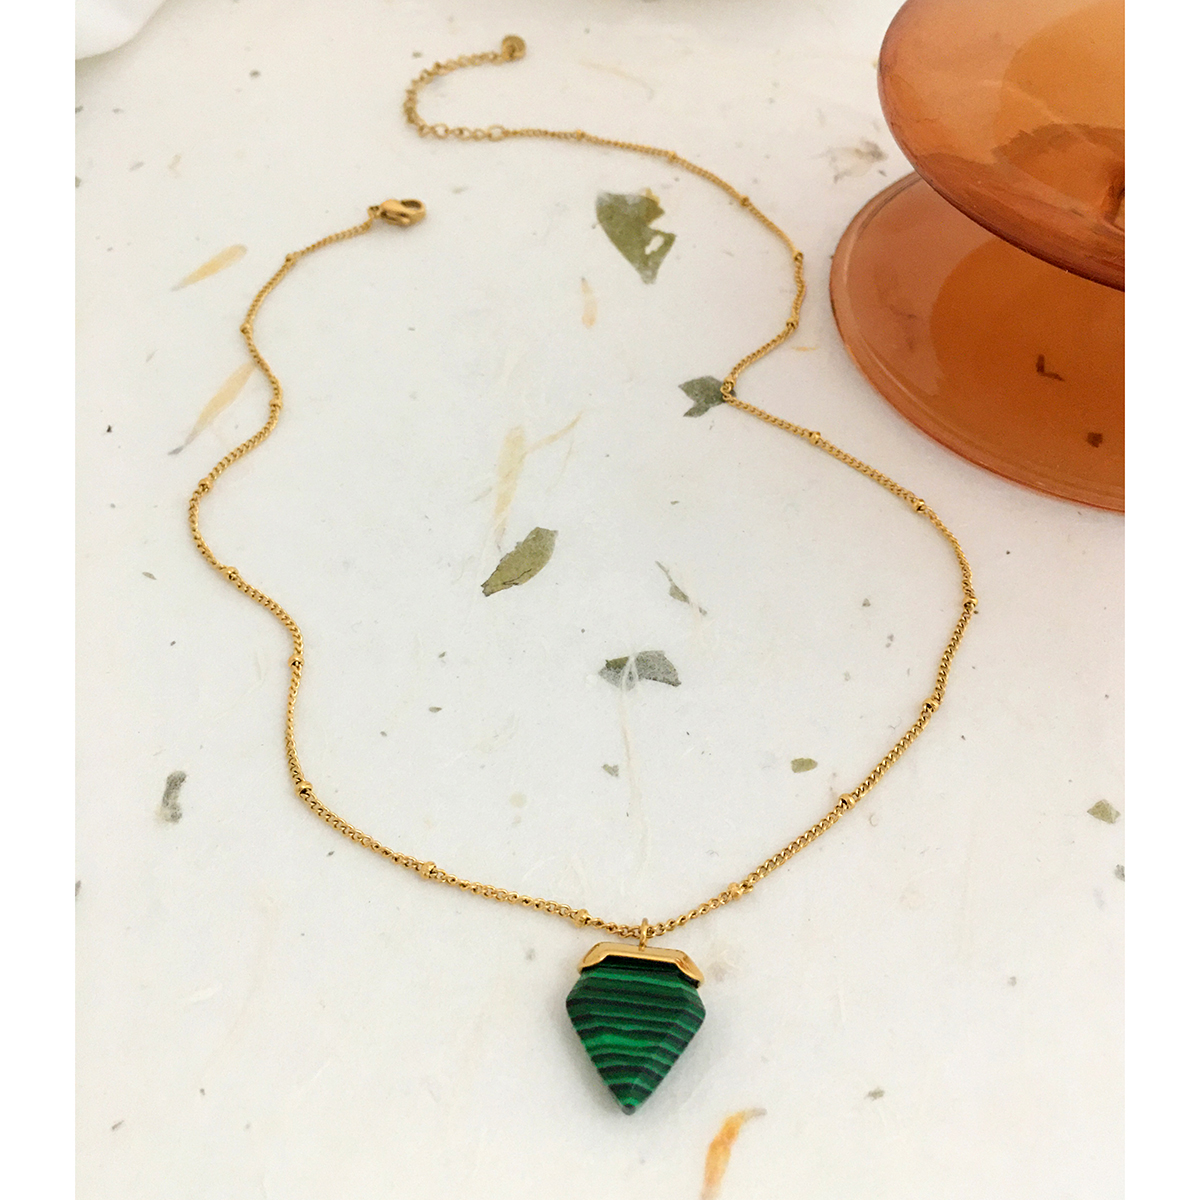 Monlansher Vintage Geometric Malachite Pendant Necklace Gold Color Thin Chain Chokers Minimalist Trendy Chain Necklaces Jewelry